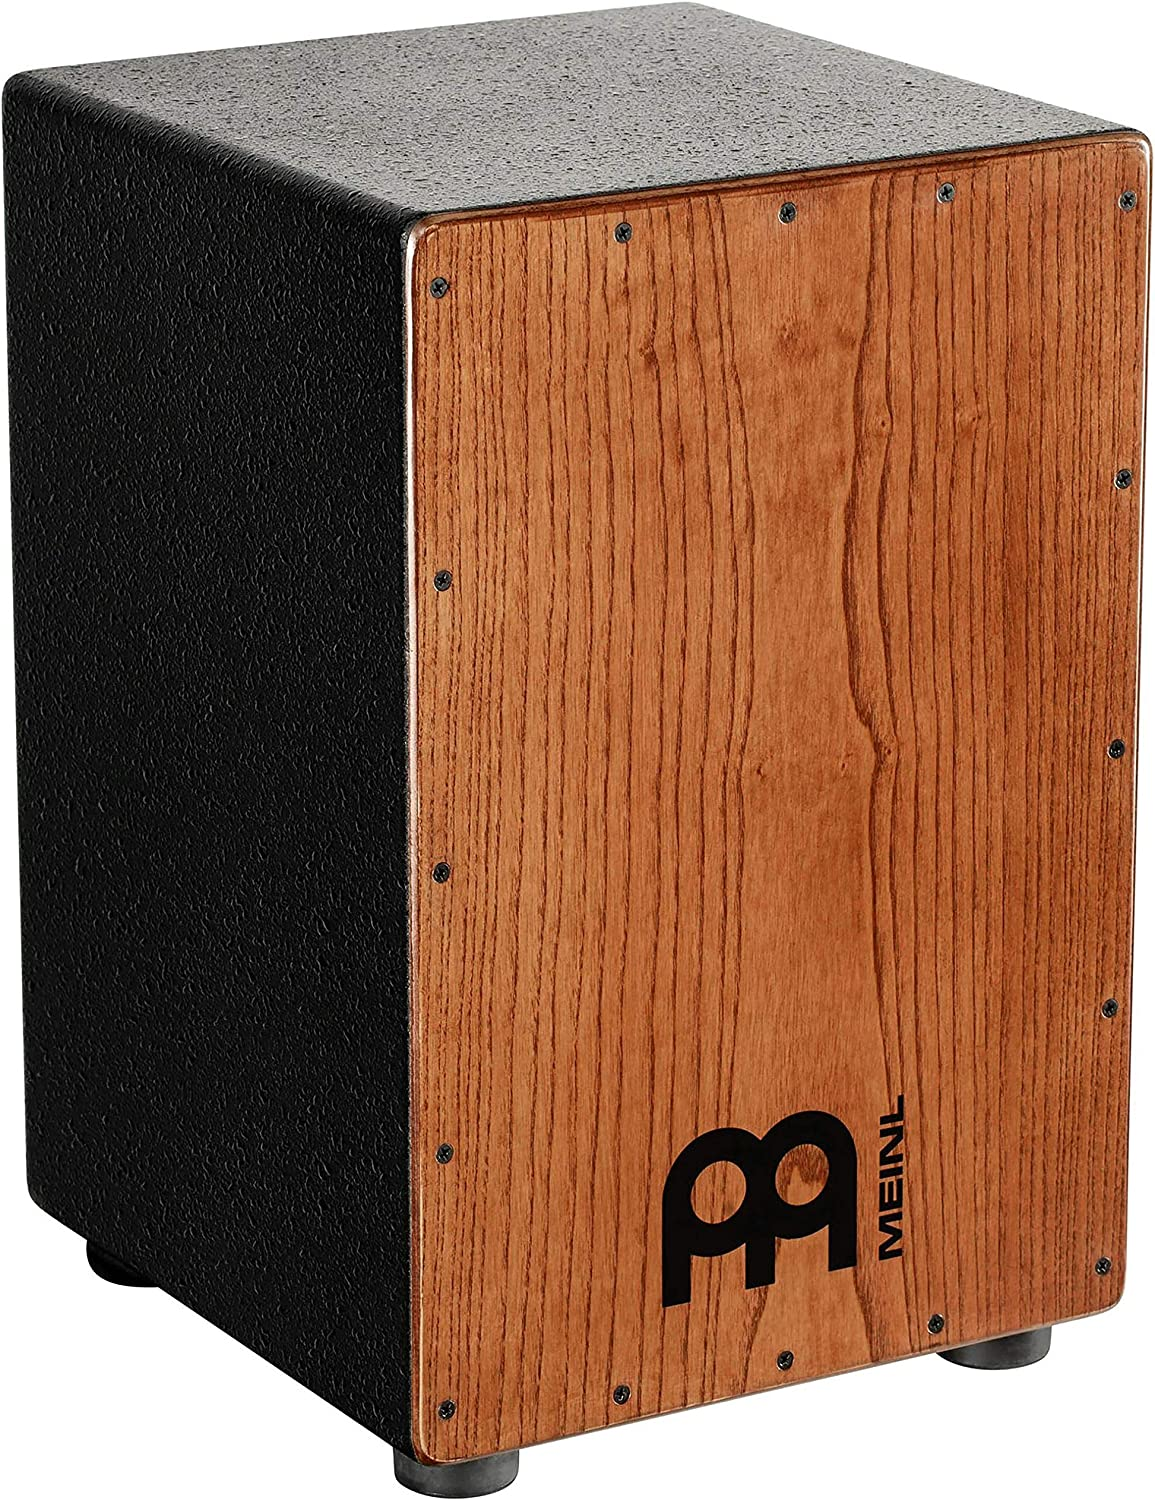 Stained American White Ash Headliner Series Cajons Meinl